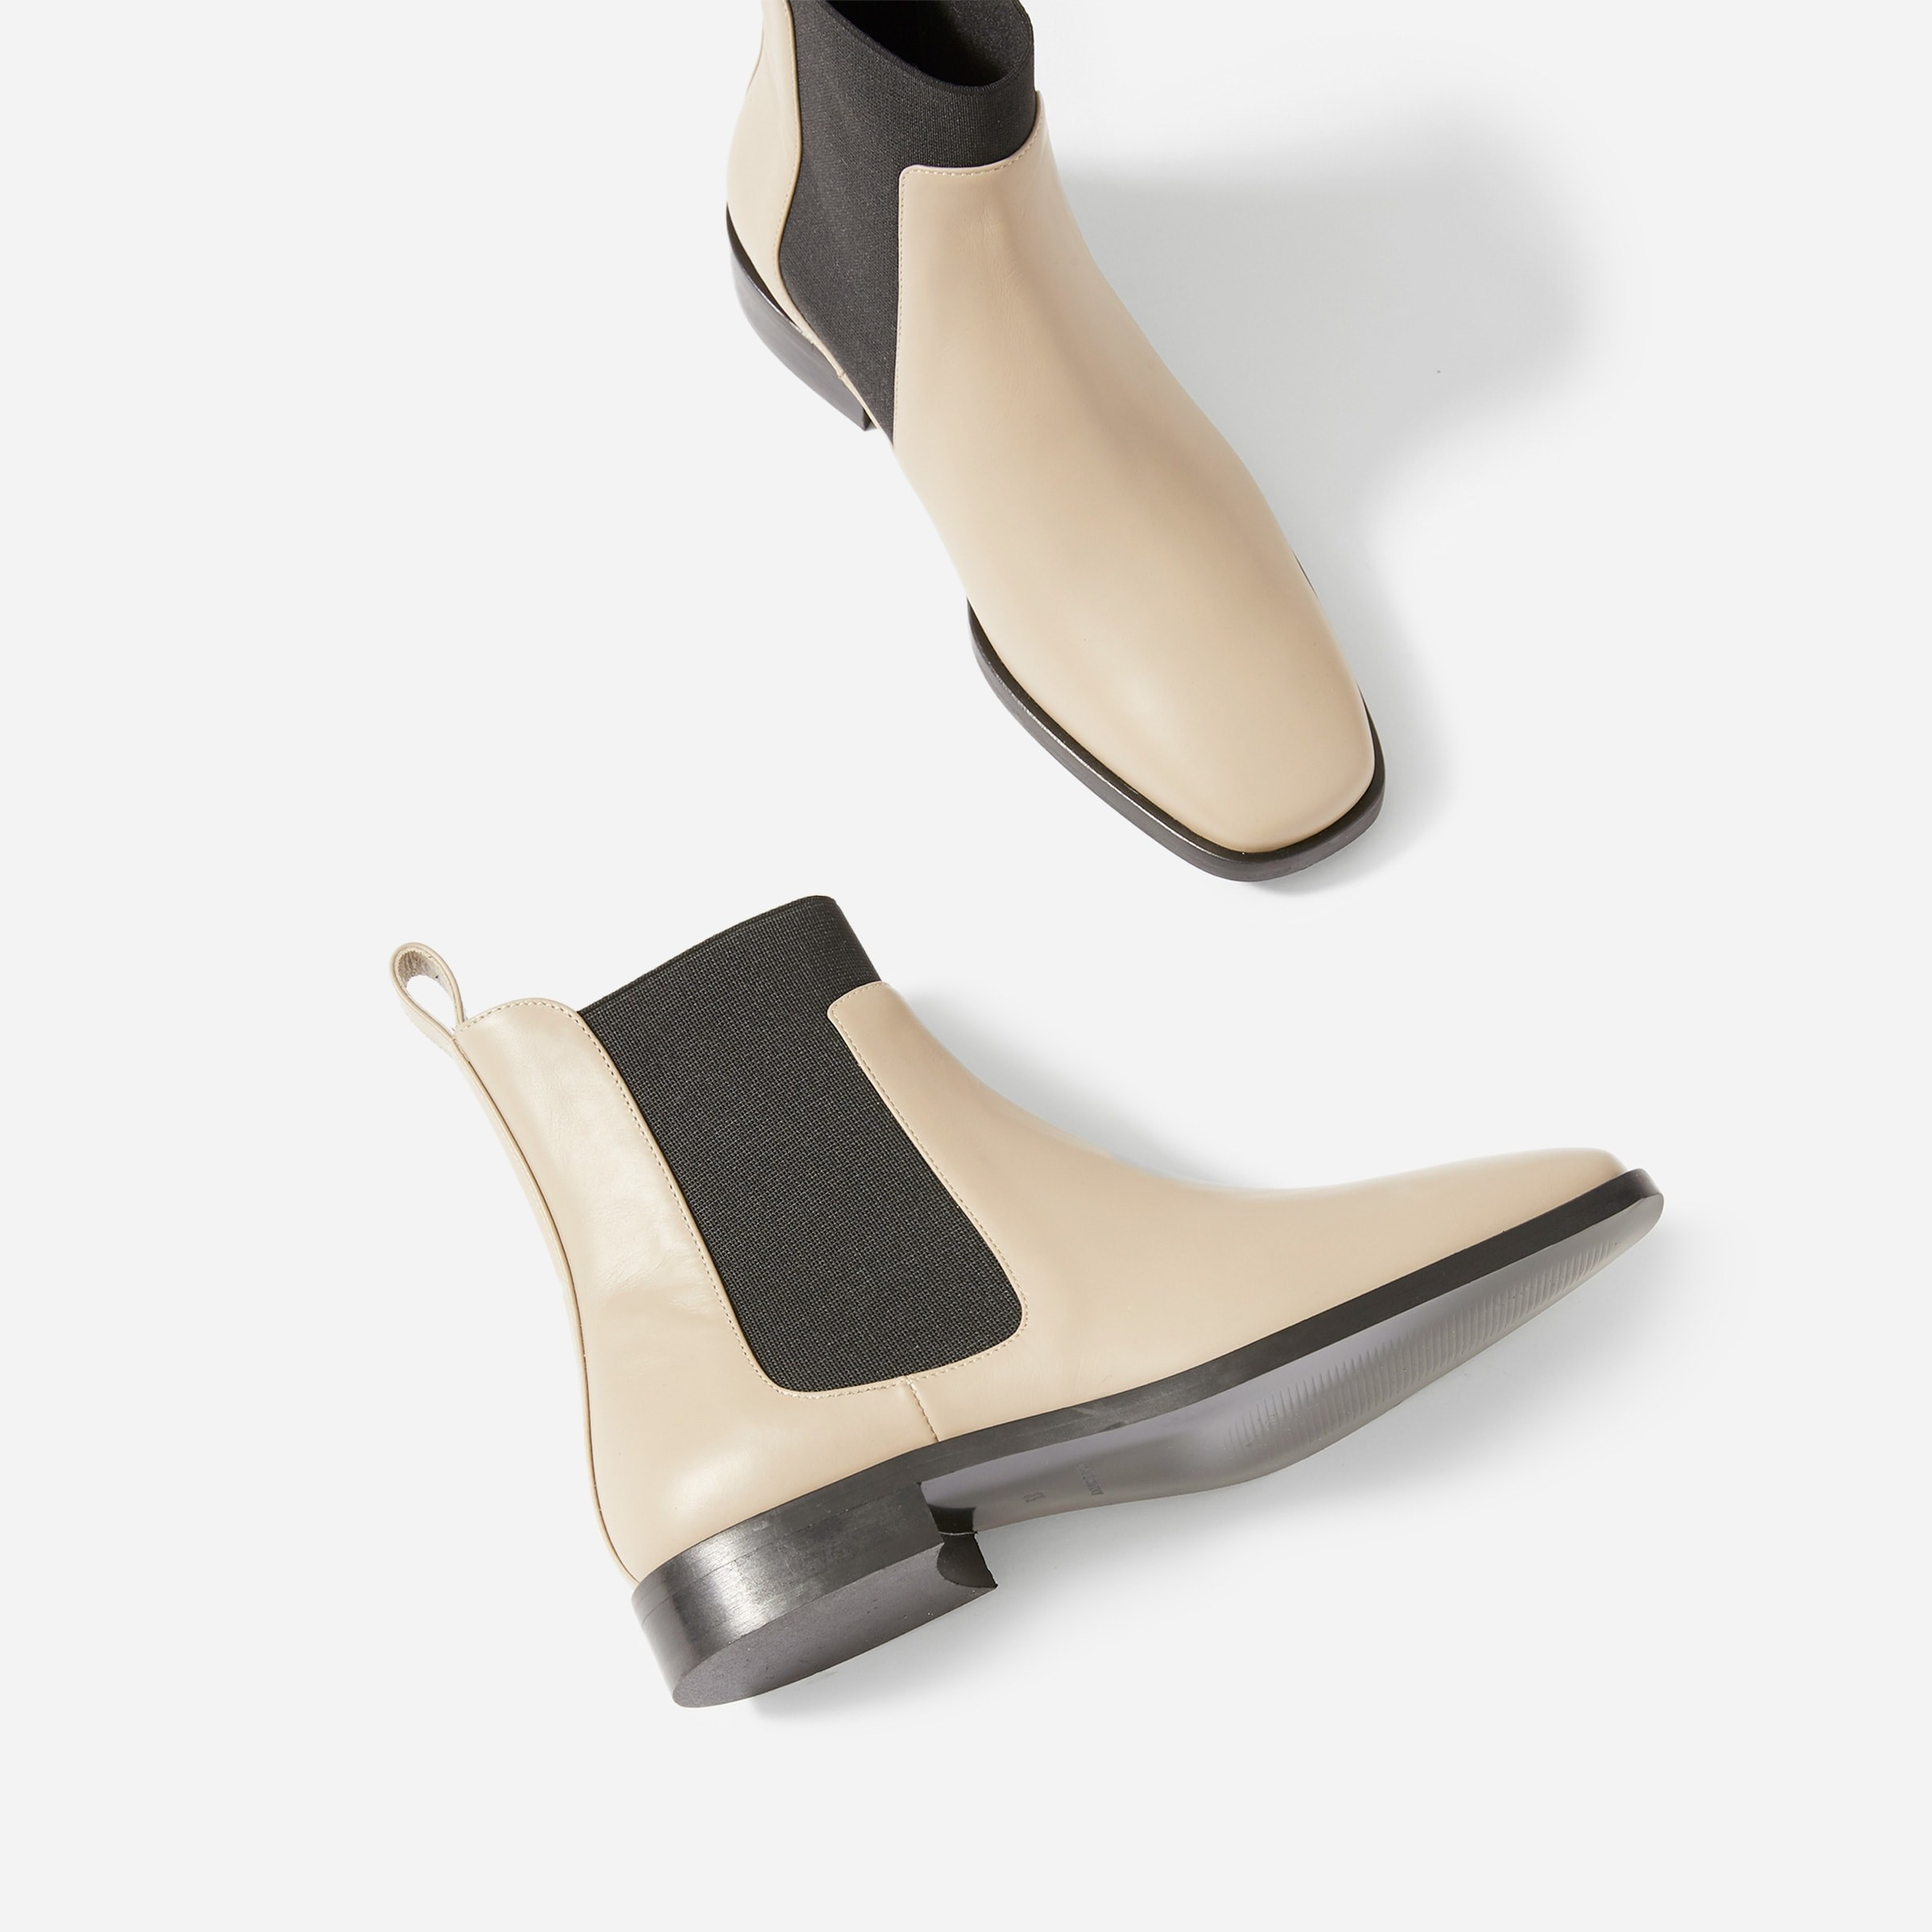 the chelsea boots in an off white color with a strechy black side panel